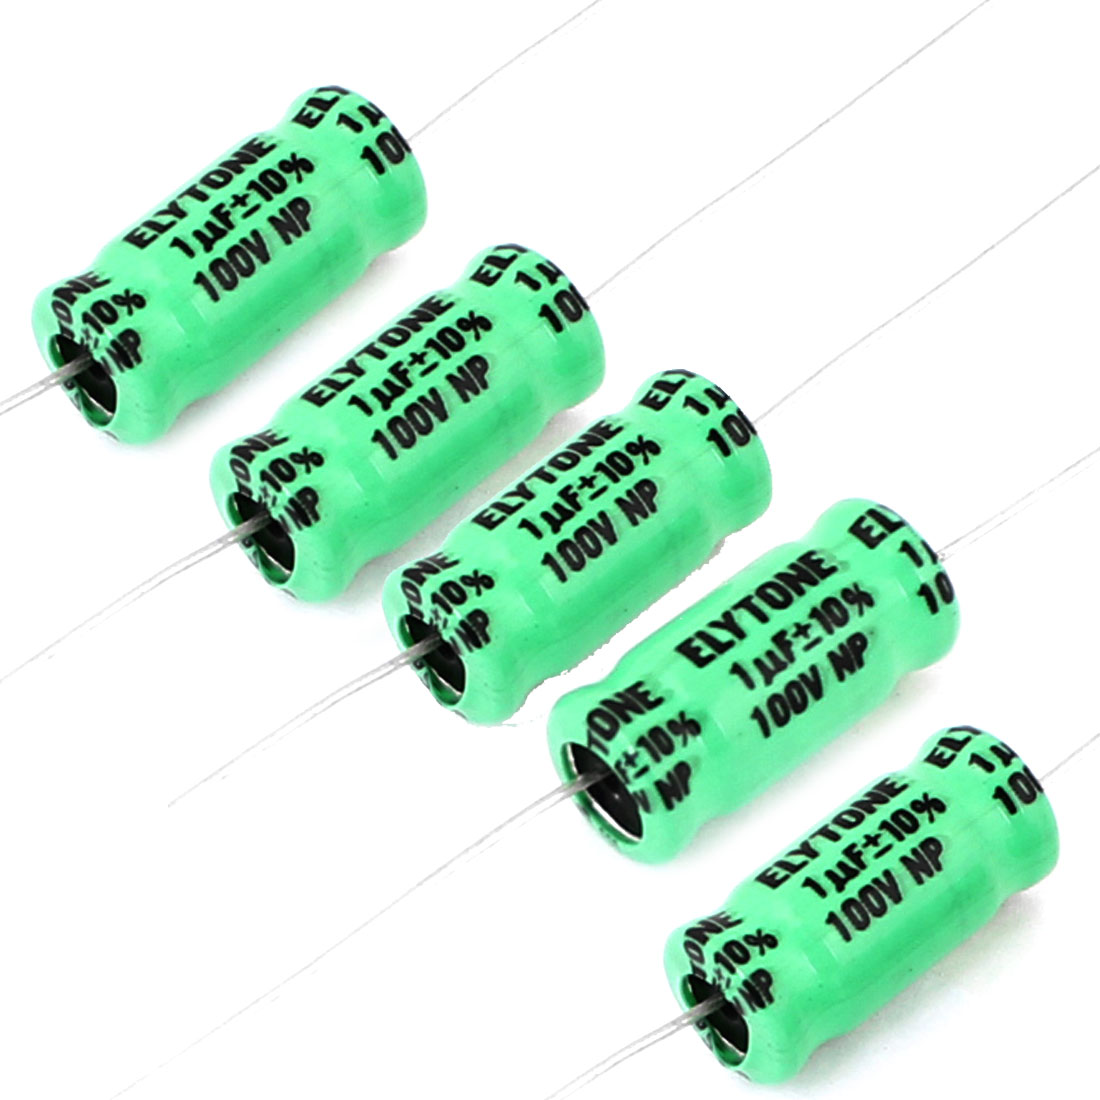 5 Pcs 8mmx17mm 1uF 100V 105C Polarized Radial Electrolytic Capacitor